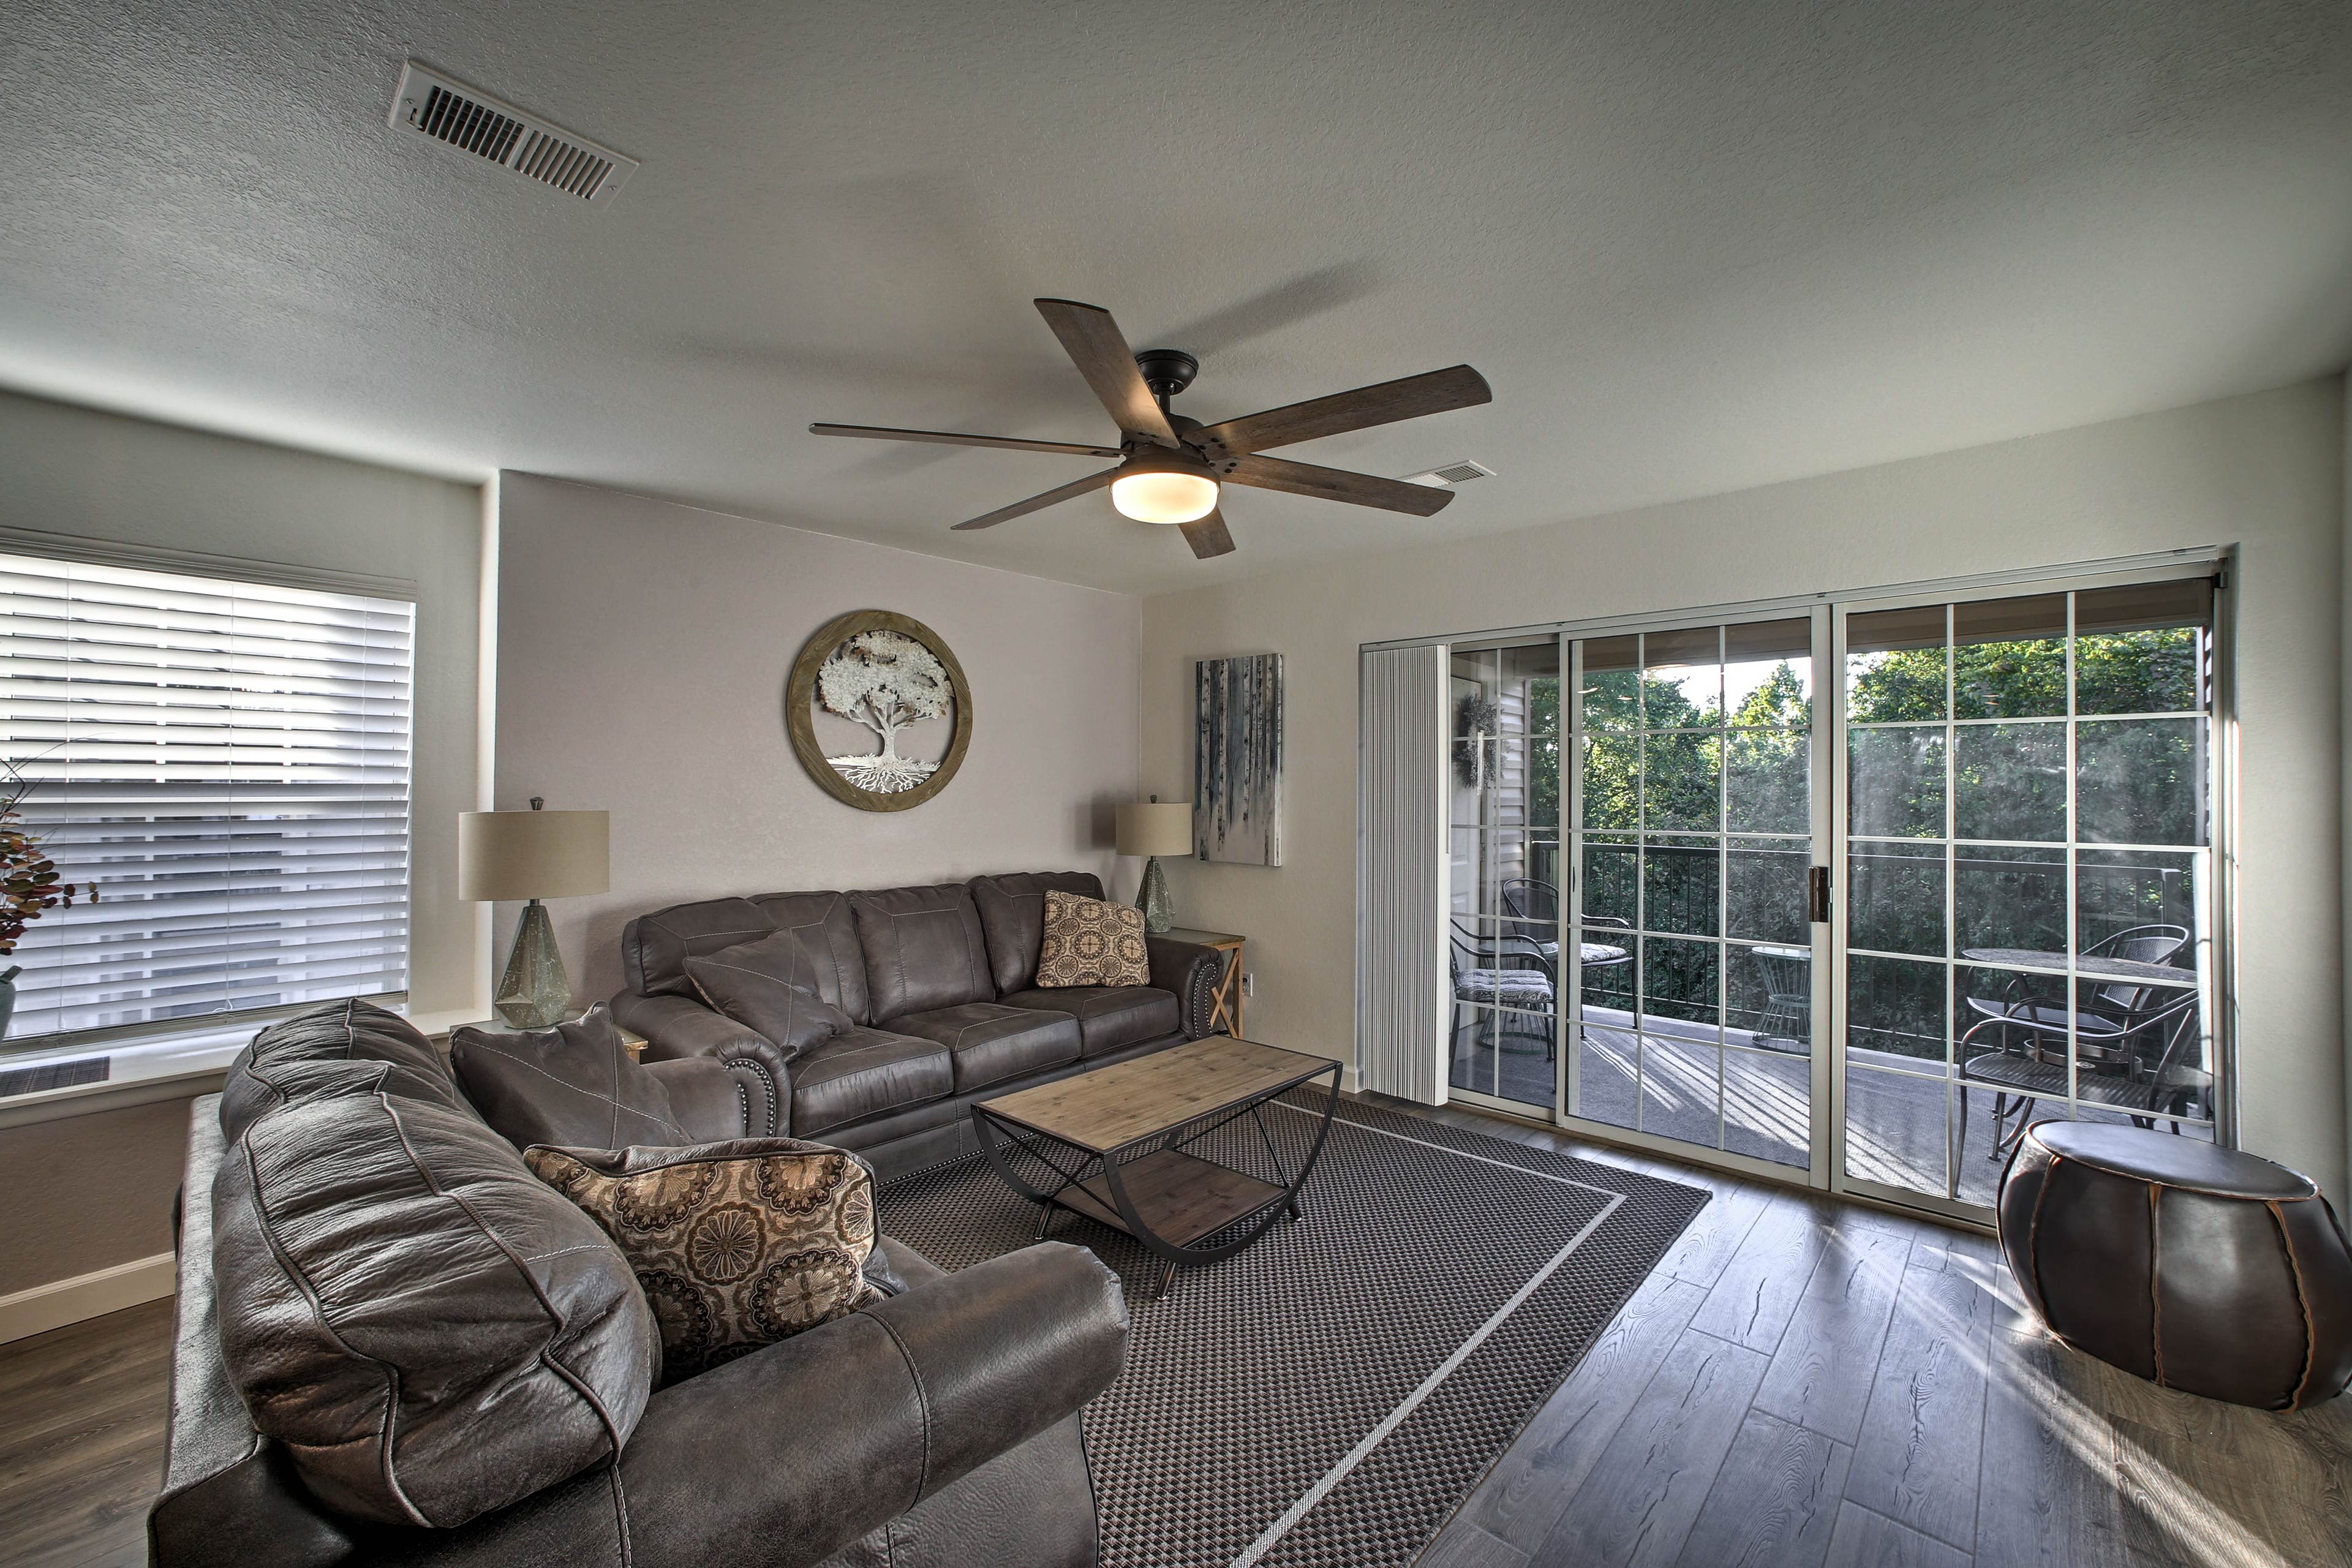 You'll feel right at home in this well-appointed living space.